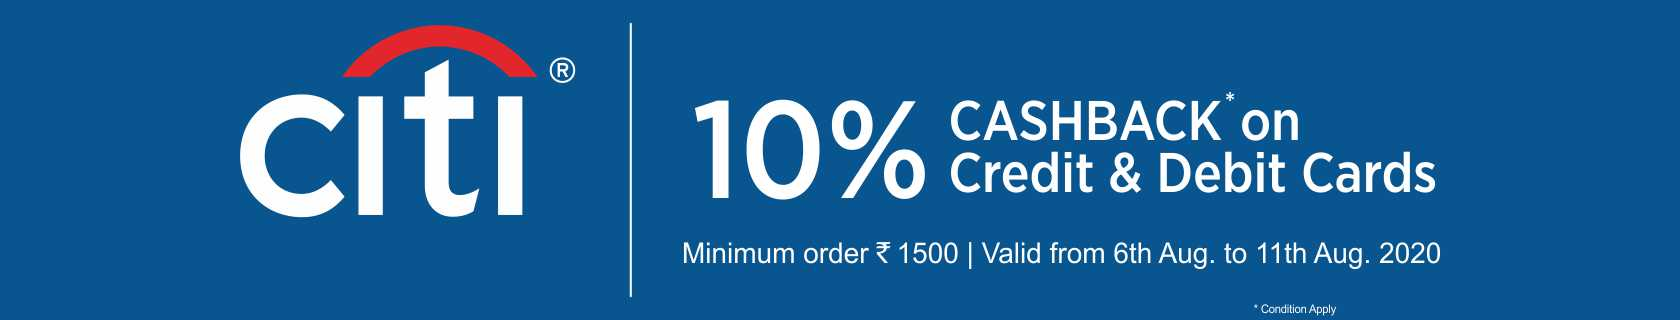 10% Cashback on CityBank credit and debit card